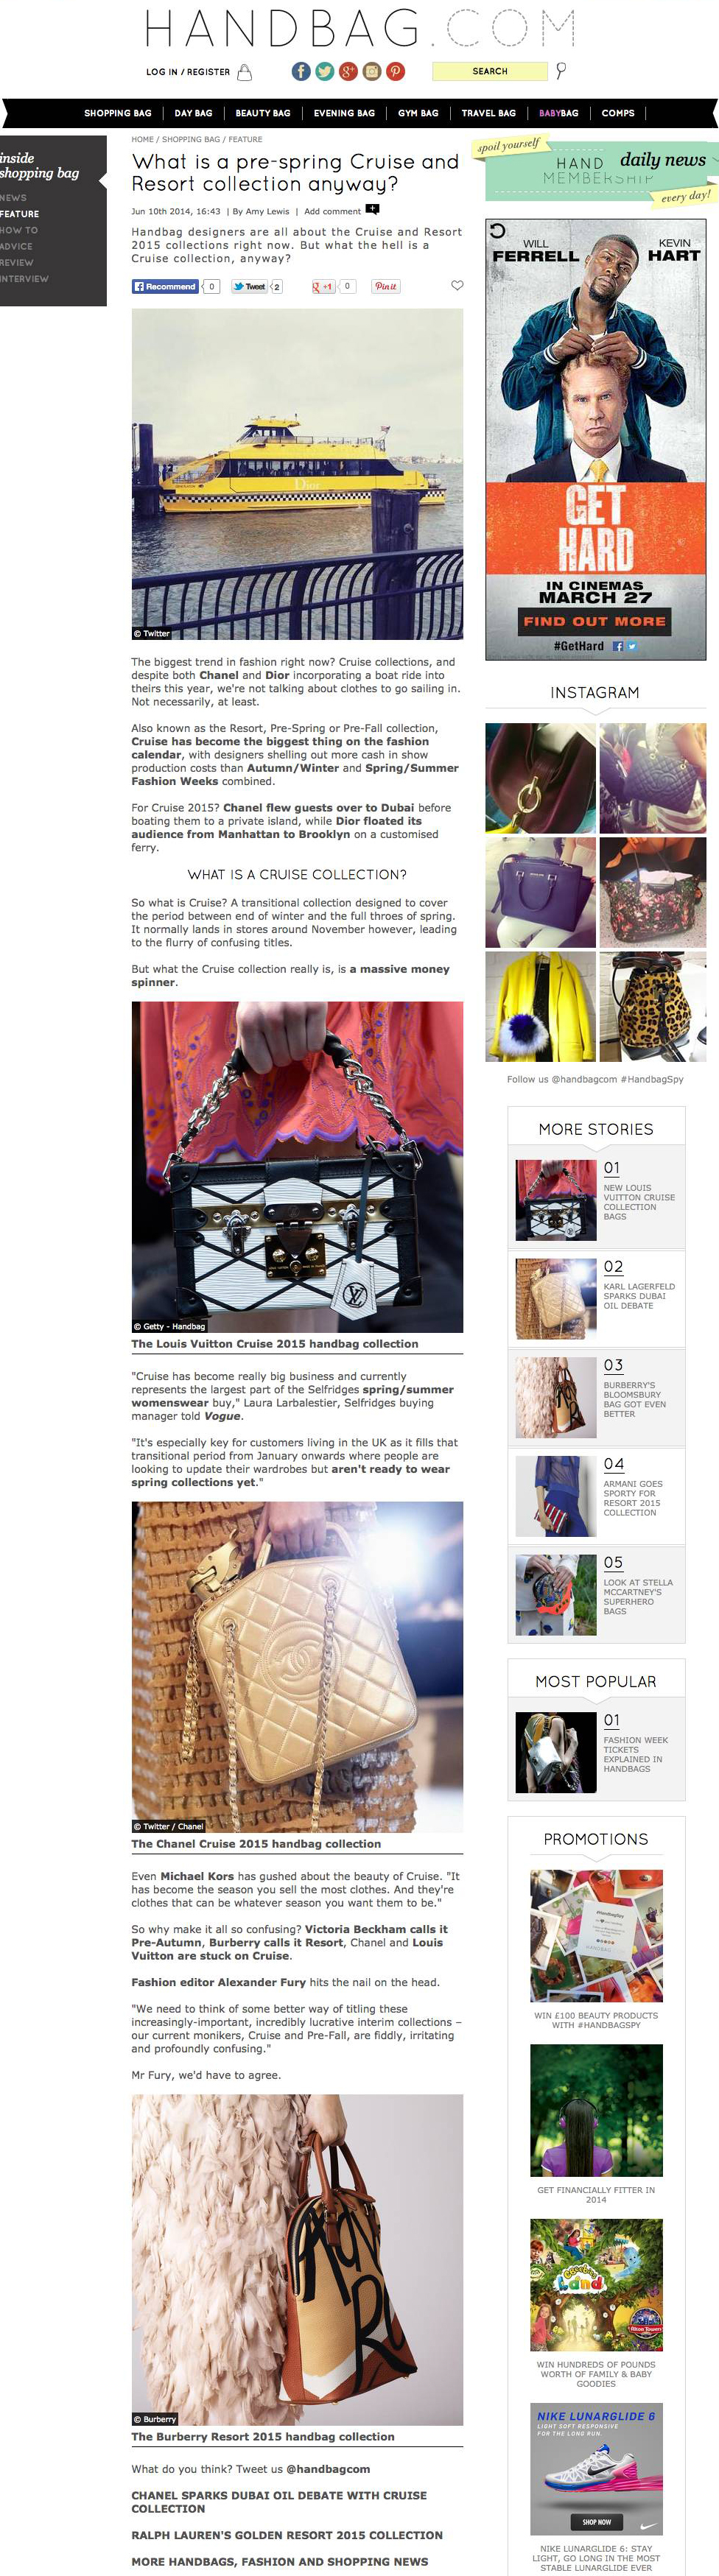 What_is_a_pre-spring_Cruise_and_Resort_collection_anyway_-_Shopping_Bag_Feature_-_handbag.com_-_2015-03-17_22.59.29.png